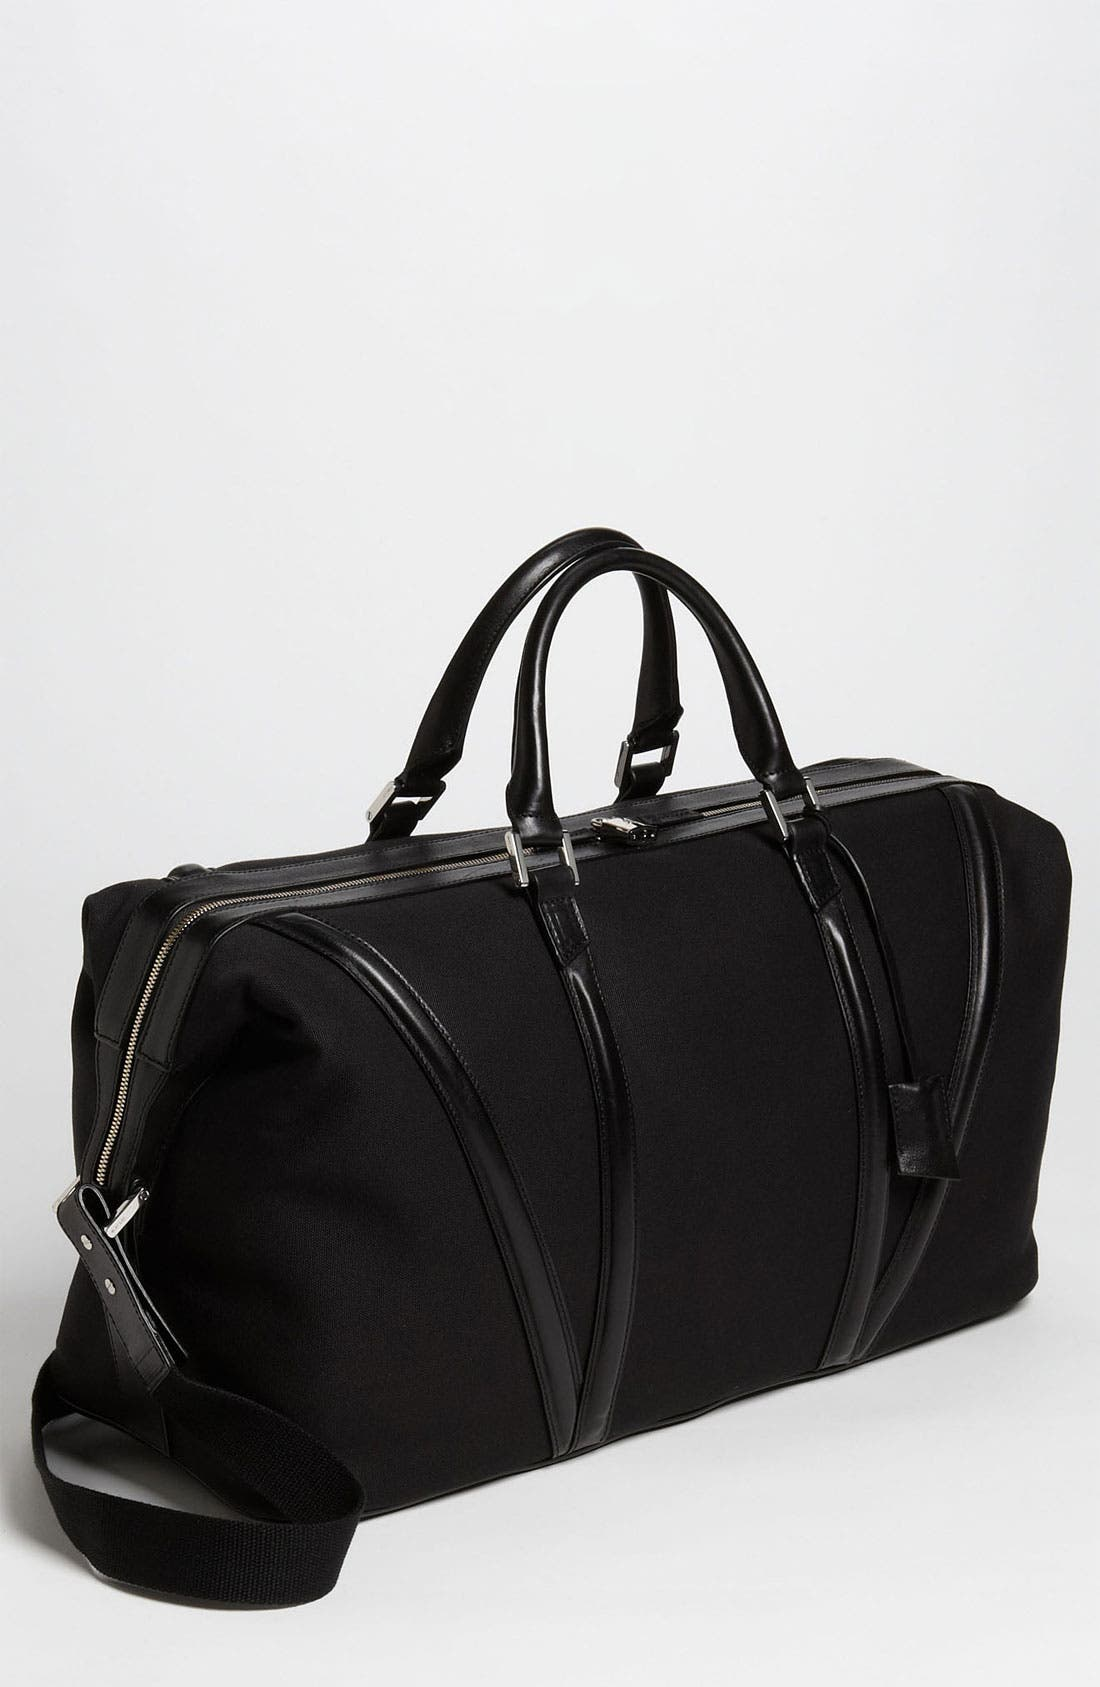 Alternate Image 1 Selected - WANT Les Essentiels de la Vie 'Deurne' Duffel Bag